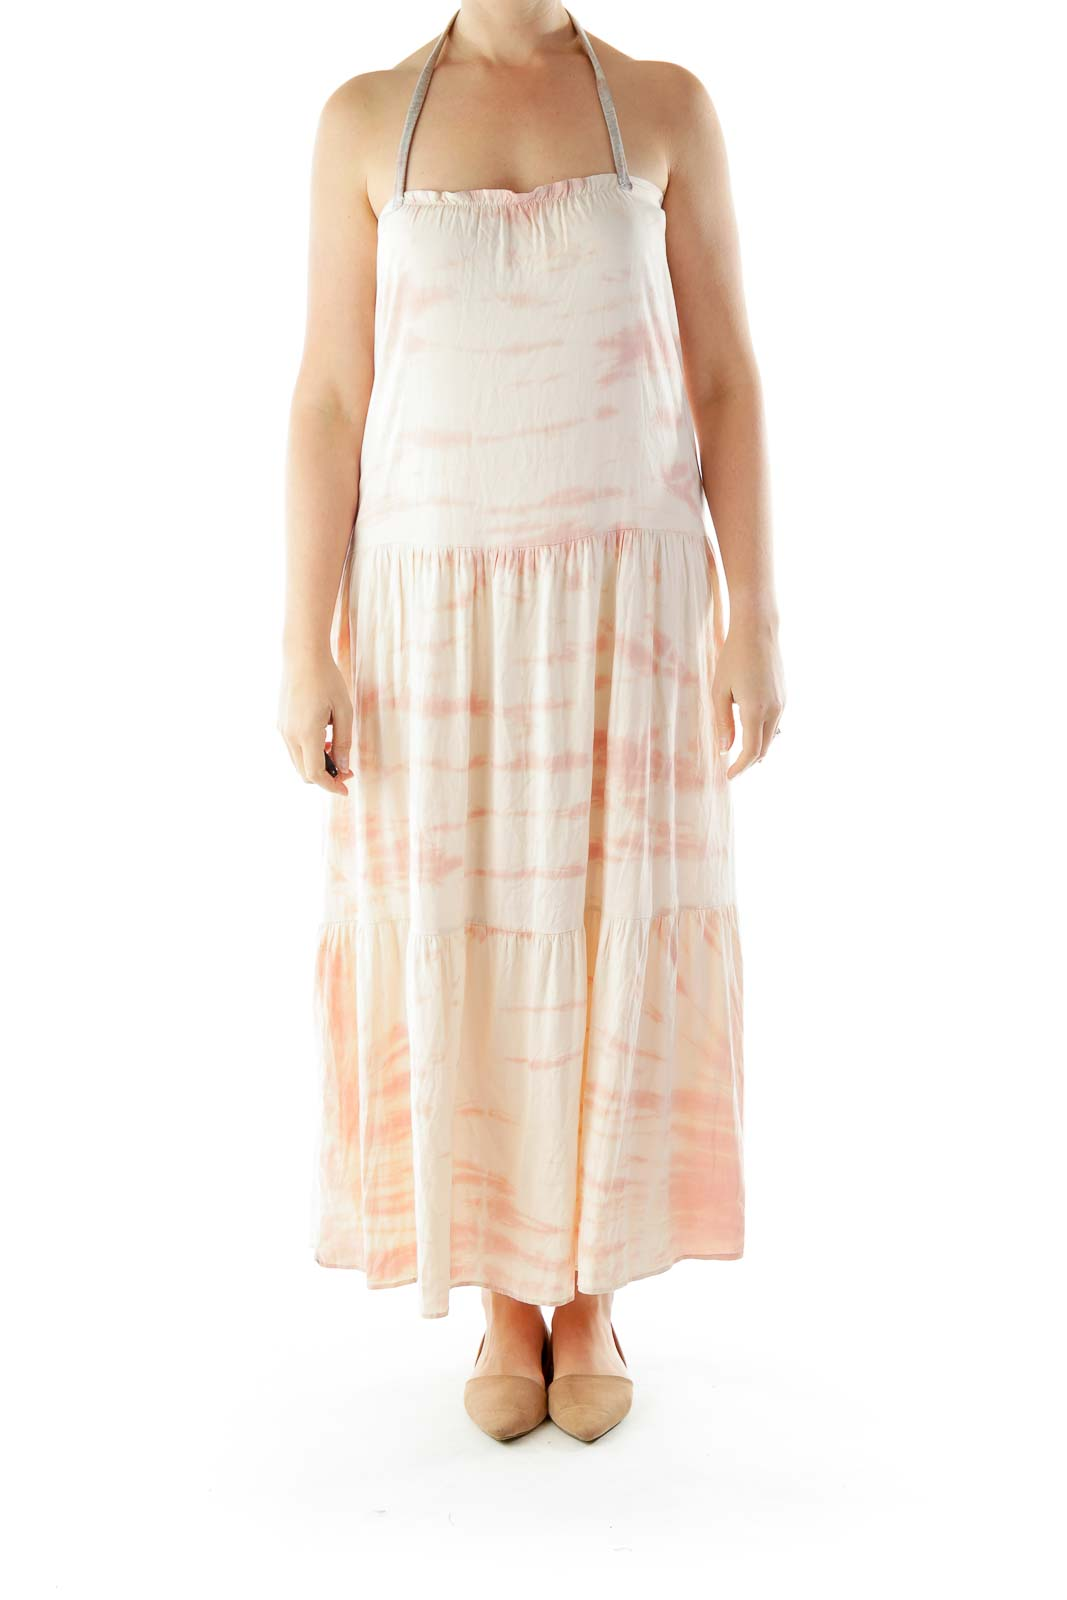 Pink White Tie Dye Maxi Dress